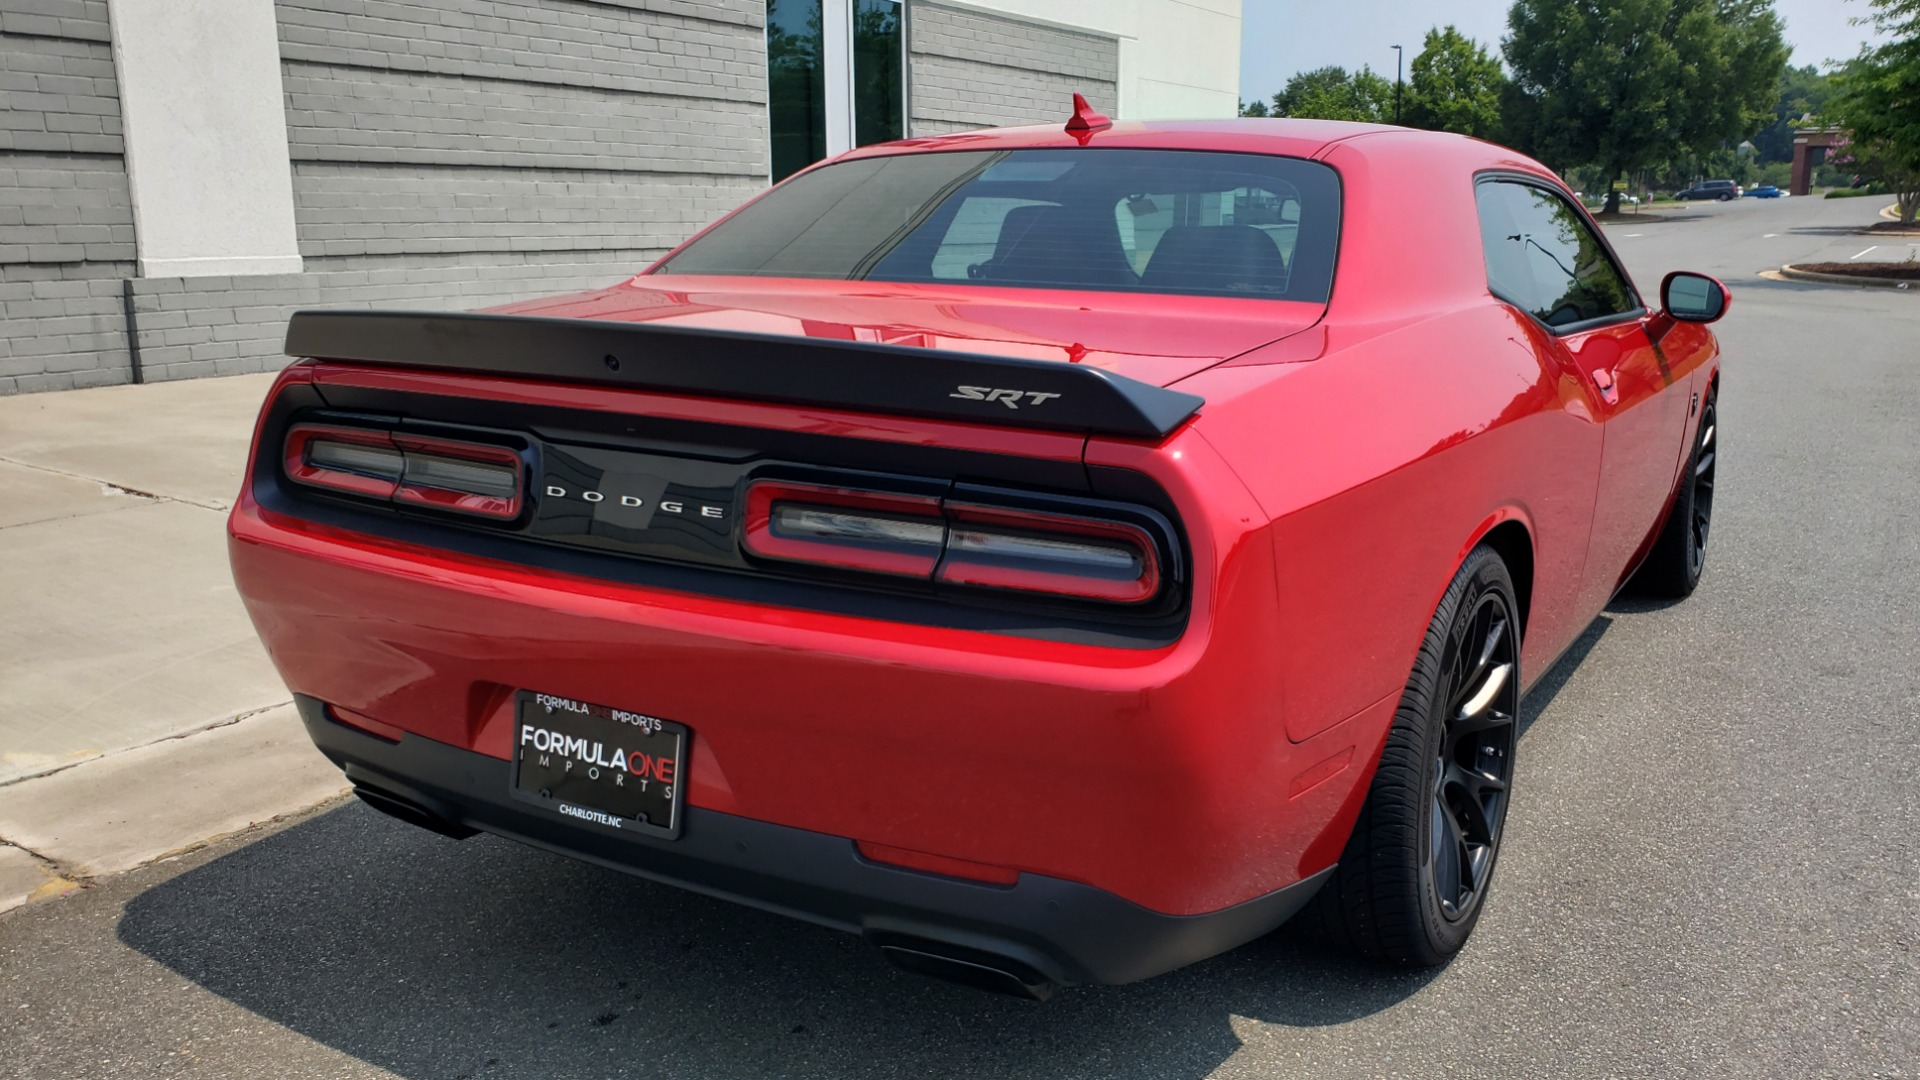 Used 2016 Dodge CHALLENGER SRT HELLCAT 707HP COUPE / AUTO / NAV / SUNROOF / H/K SND / REARVIEW for sale $60,995 at Formula Imports in Charlotte NC 28227 11